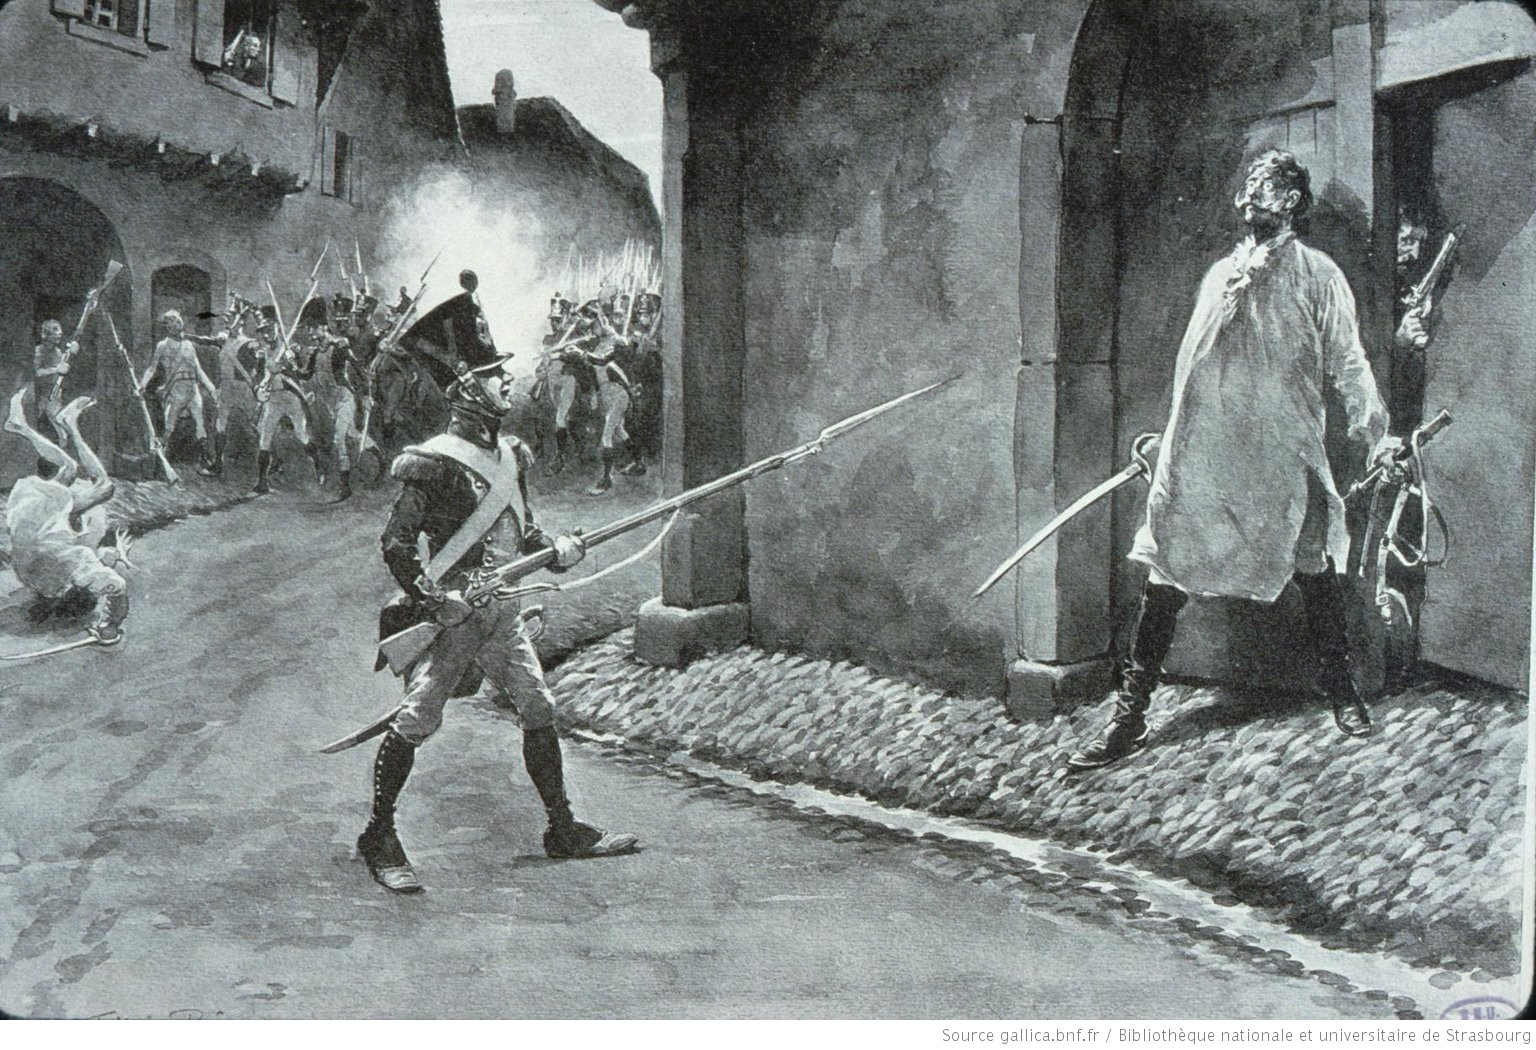 A scene depicting street-fighting in the town of Mittelhausbergen in Alsace.